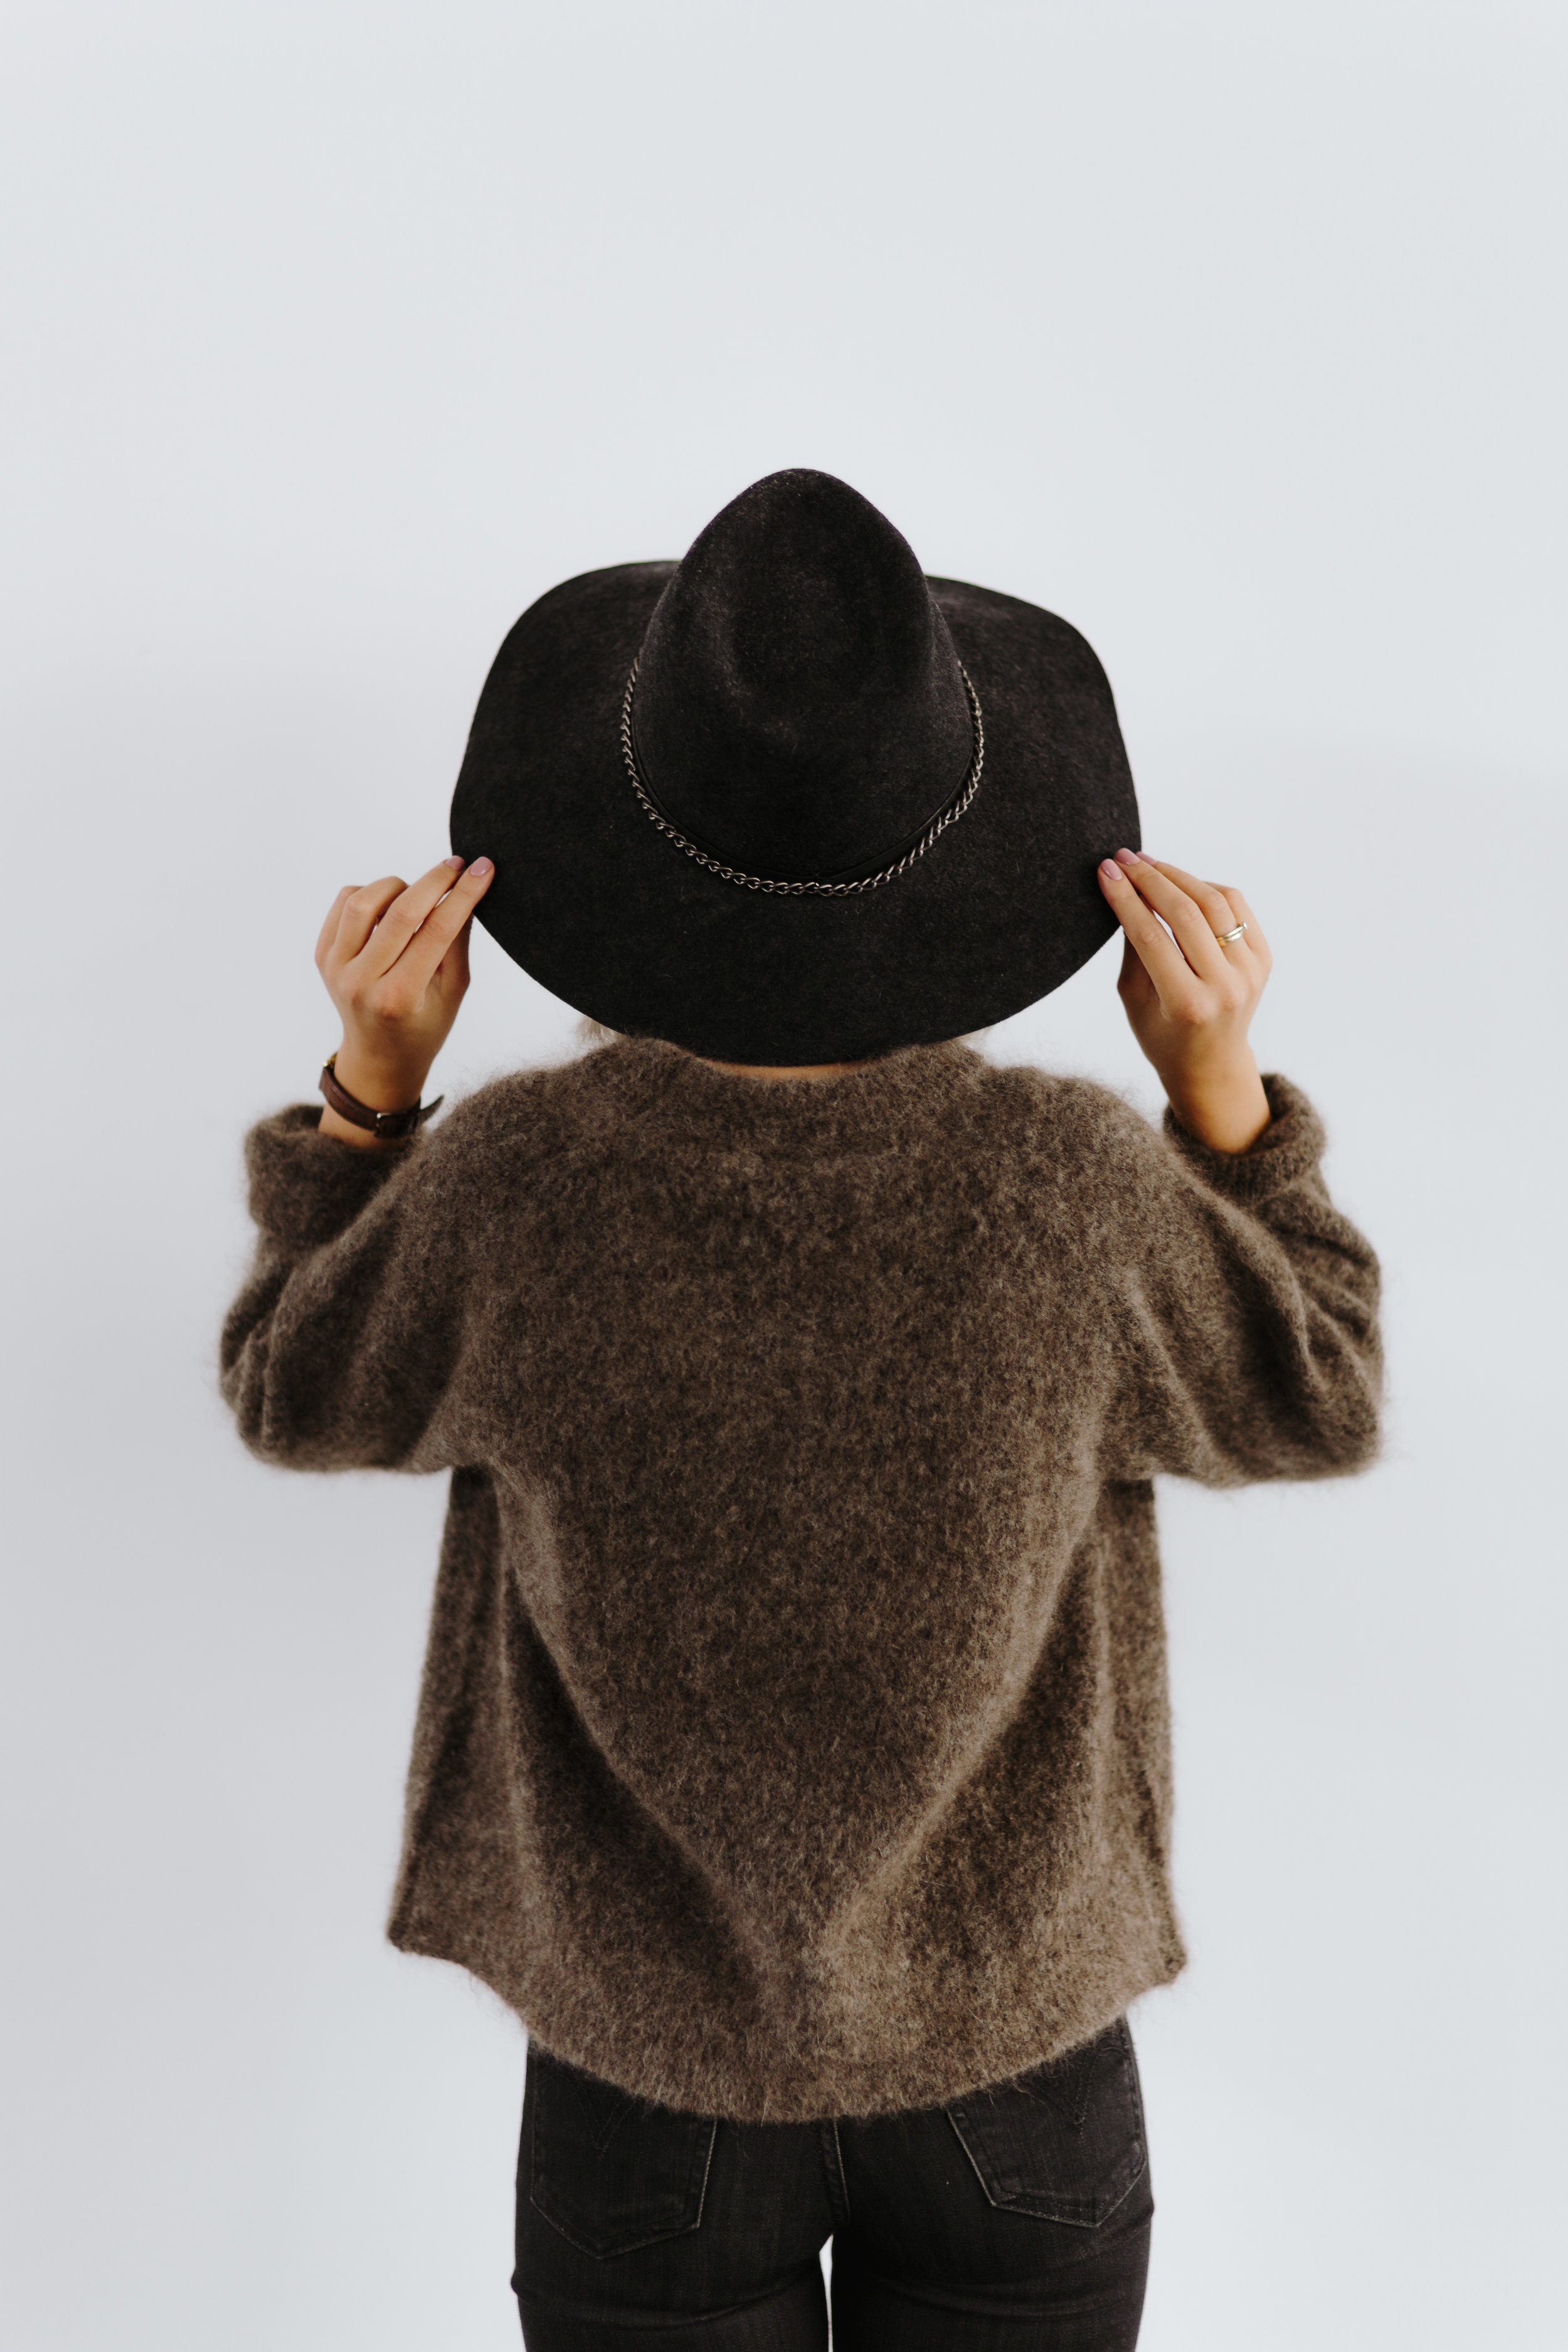 kaboompics_A woman in a brown sweater with a black hat on her head.jpg